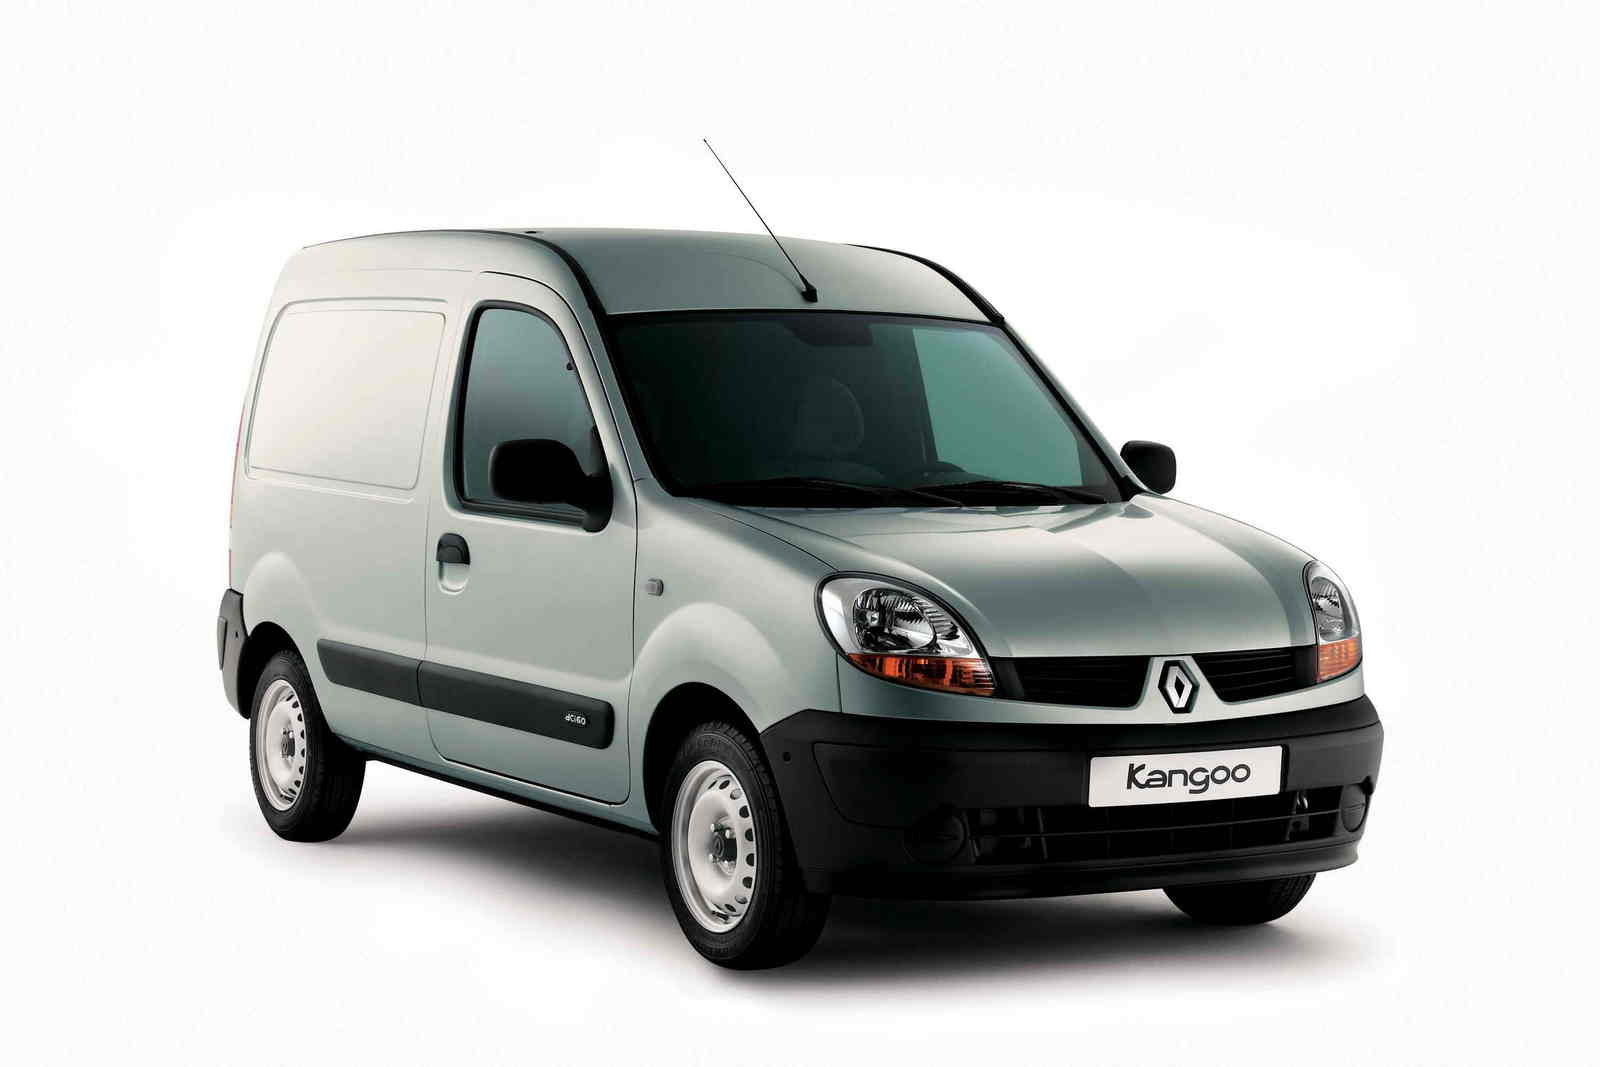 2006 renault kangoo picture 46074 car review top speed. Black Bedroom Furniture Sets. Home Design Ideas